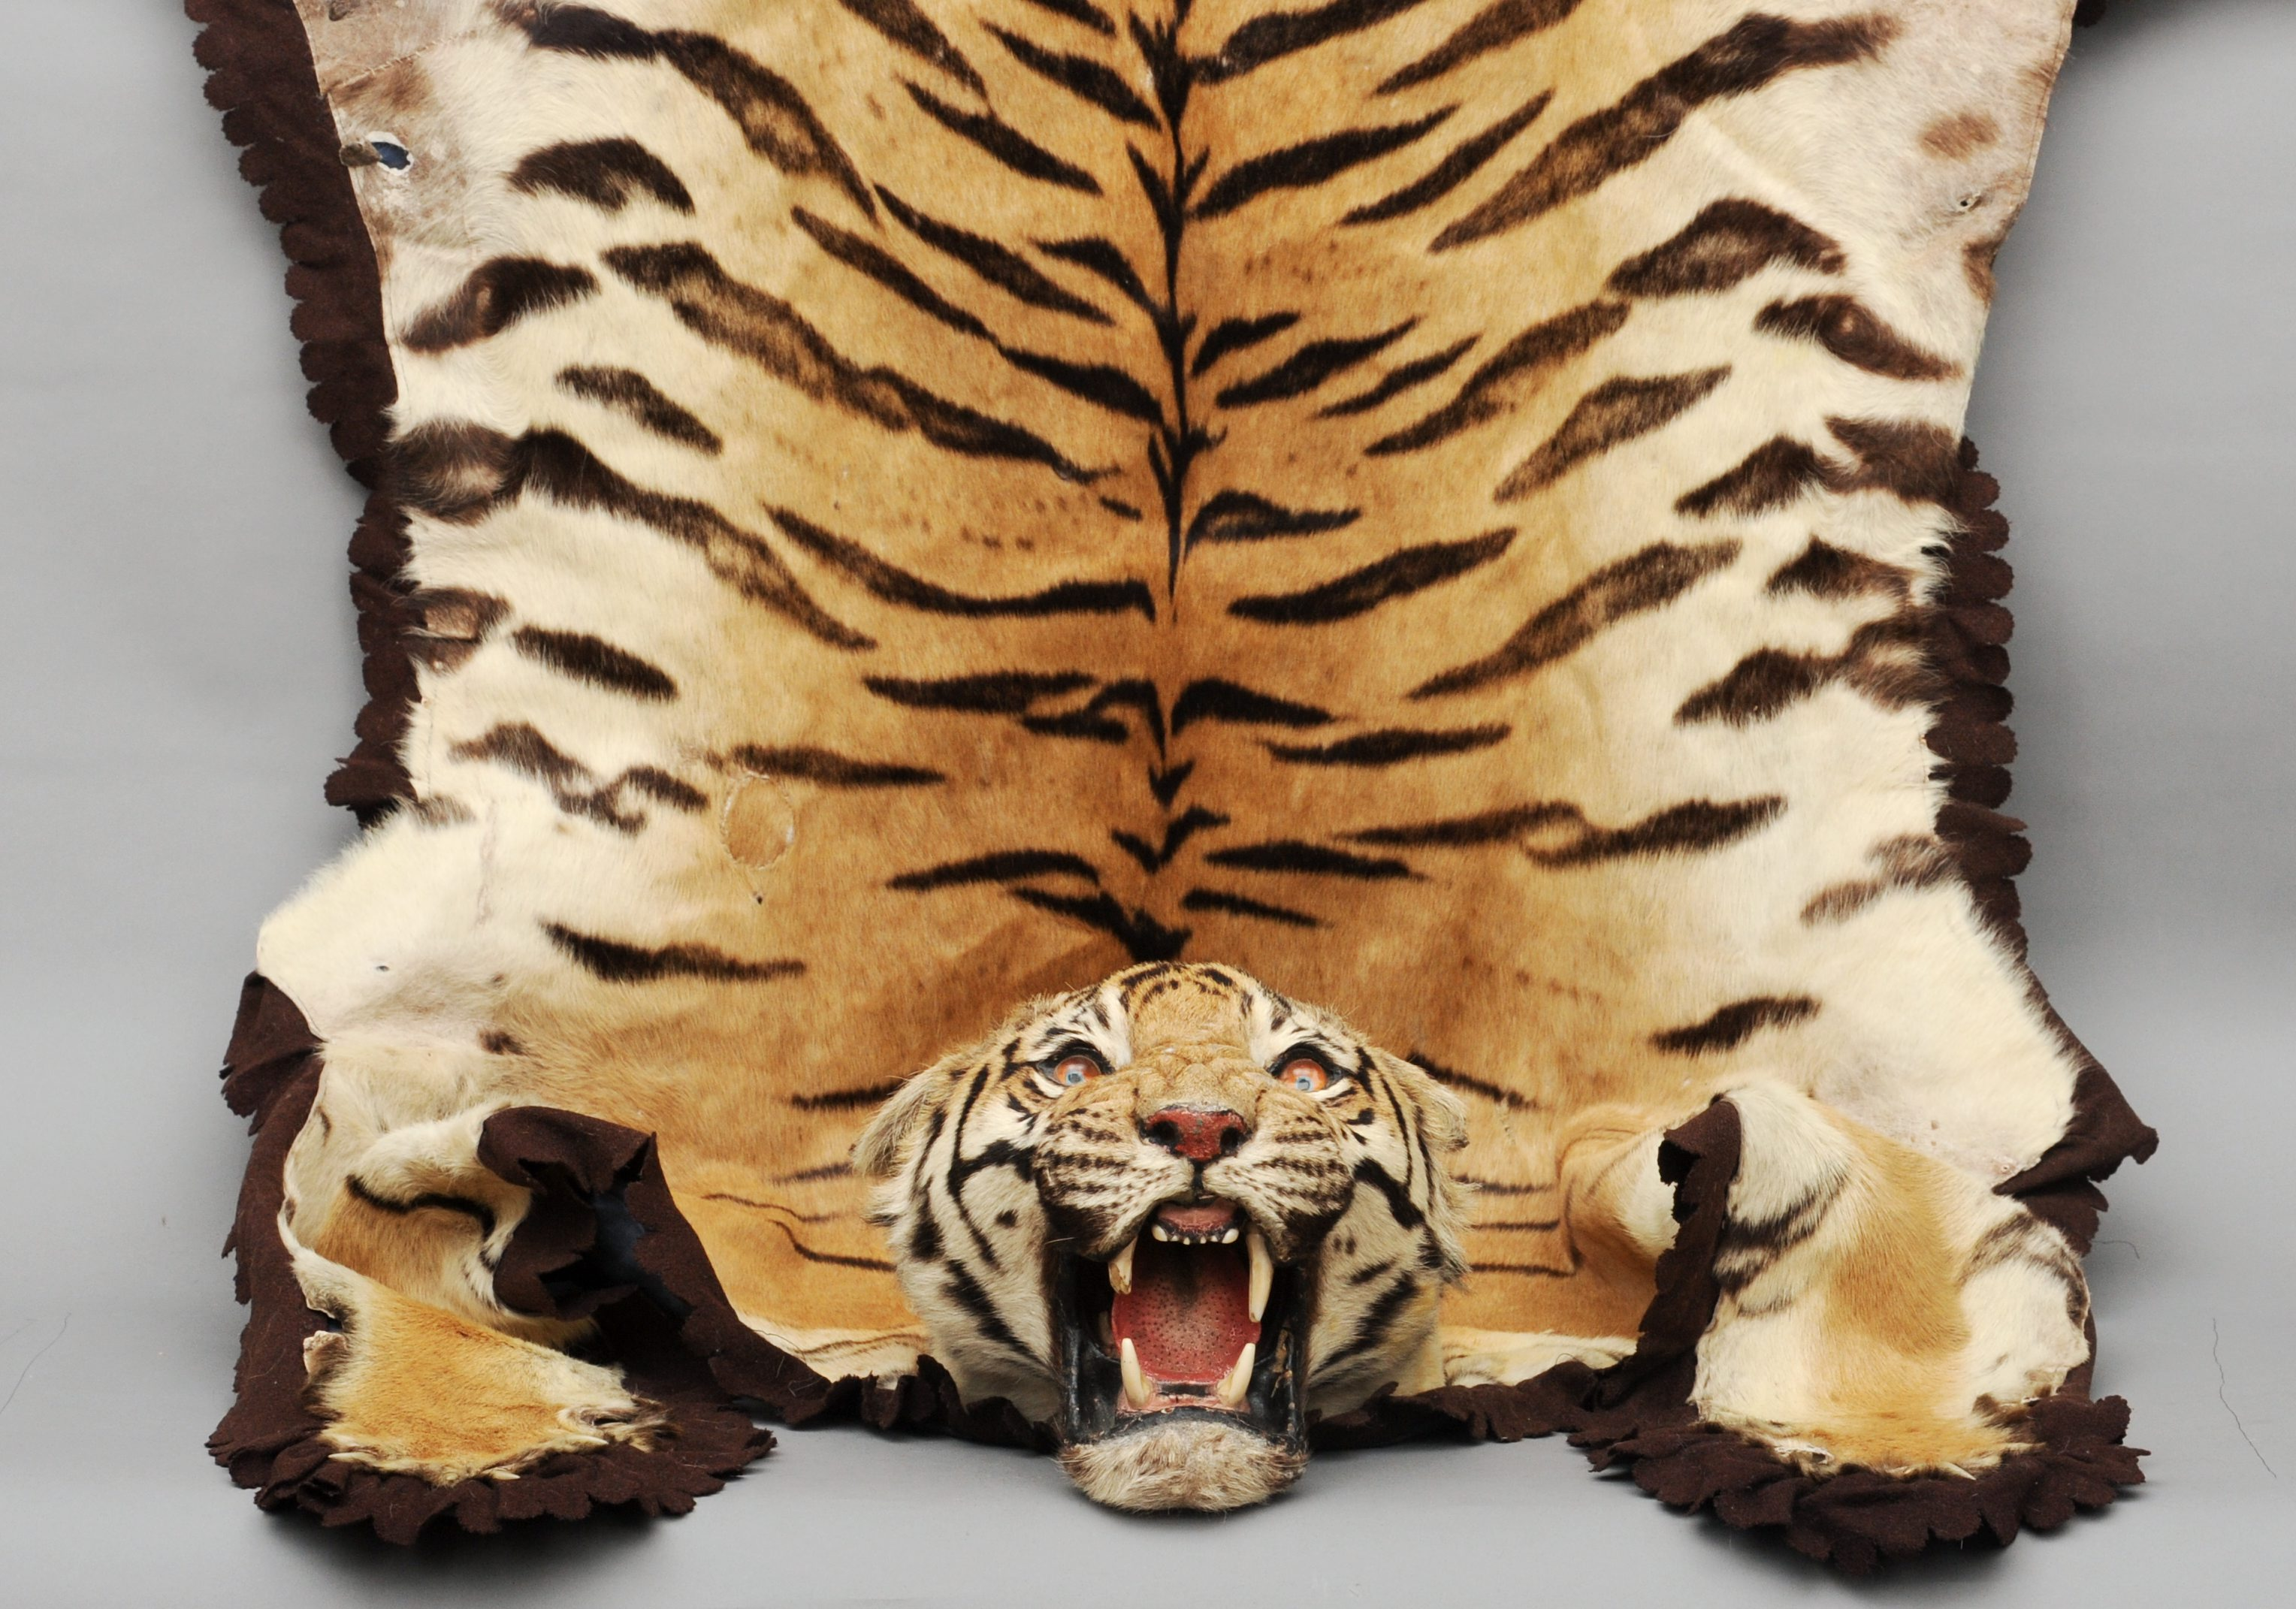 Lot 184   An Early 20th Century Tiger Skin Rug, Circa 1900, Probably Van